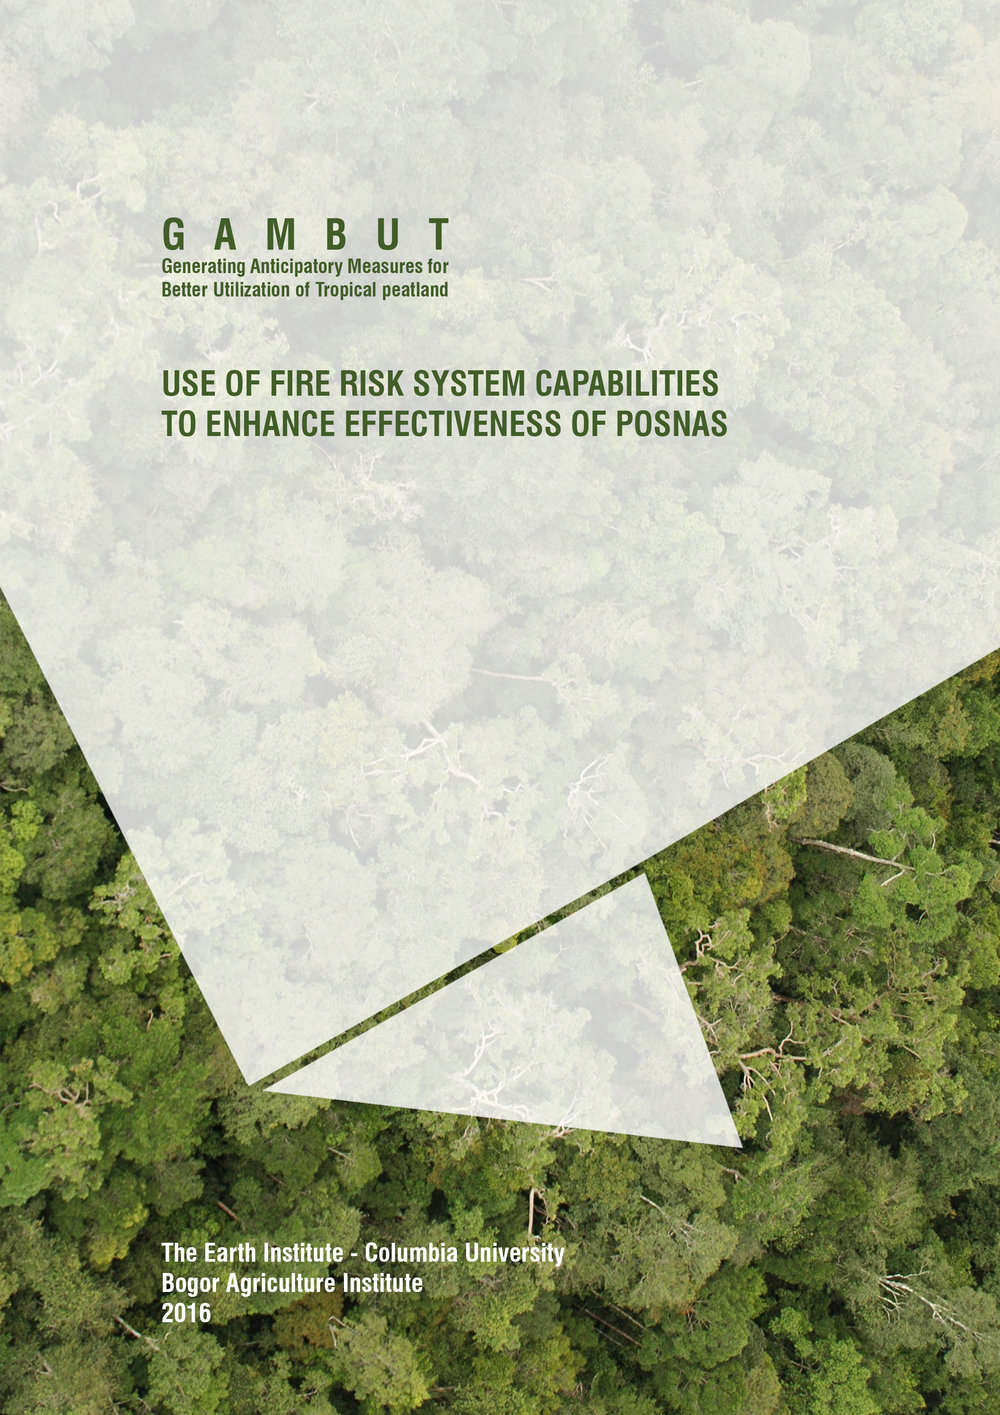 POSNAS was the former national standard operating procedure on forest and land fires. While it was abandoned in mid-2016, this report is still relevant, as provides an overview of national level peat fire management and recommendations for how the FRS and advanced early warning can improve national-level coordination around fires.  Click  here  for the Bahasa Indonesia version.